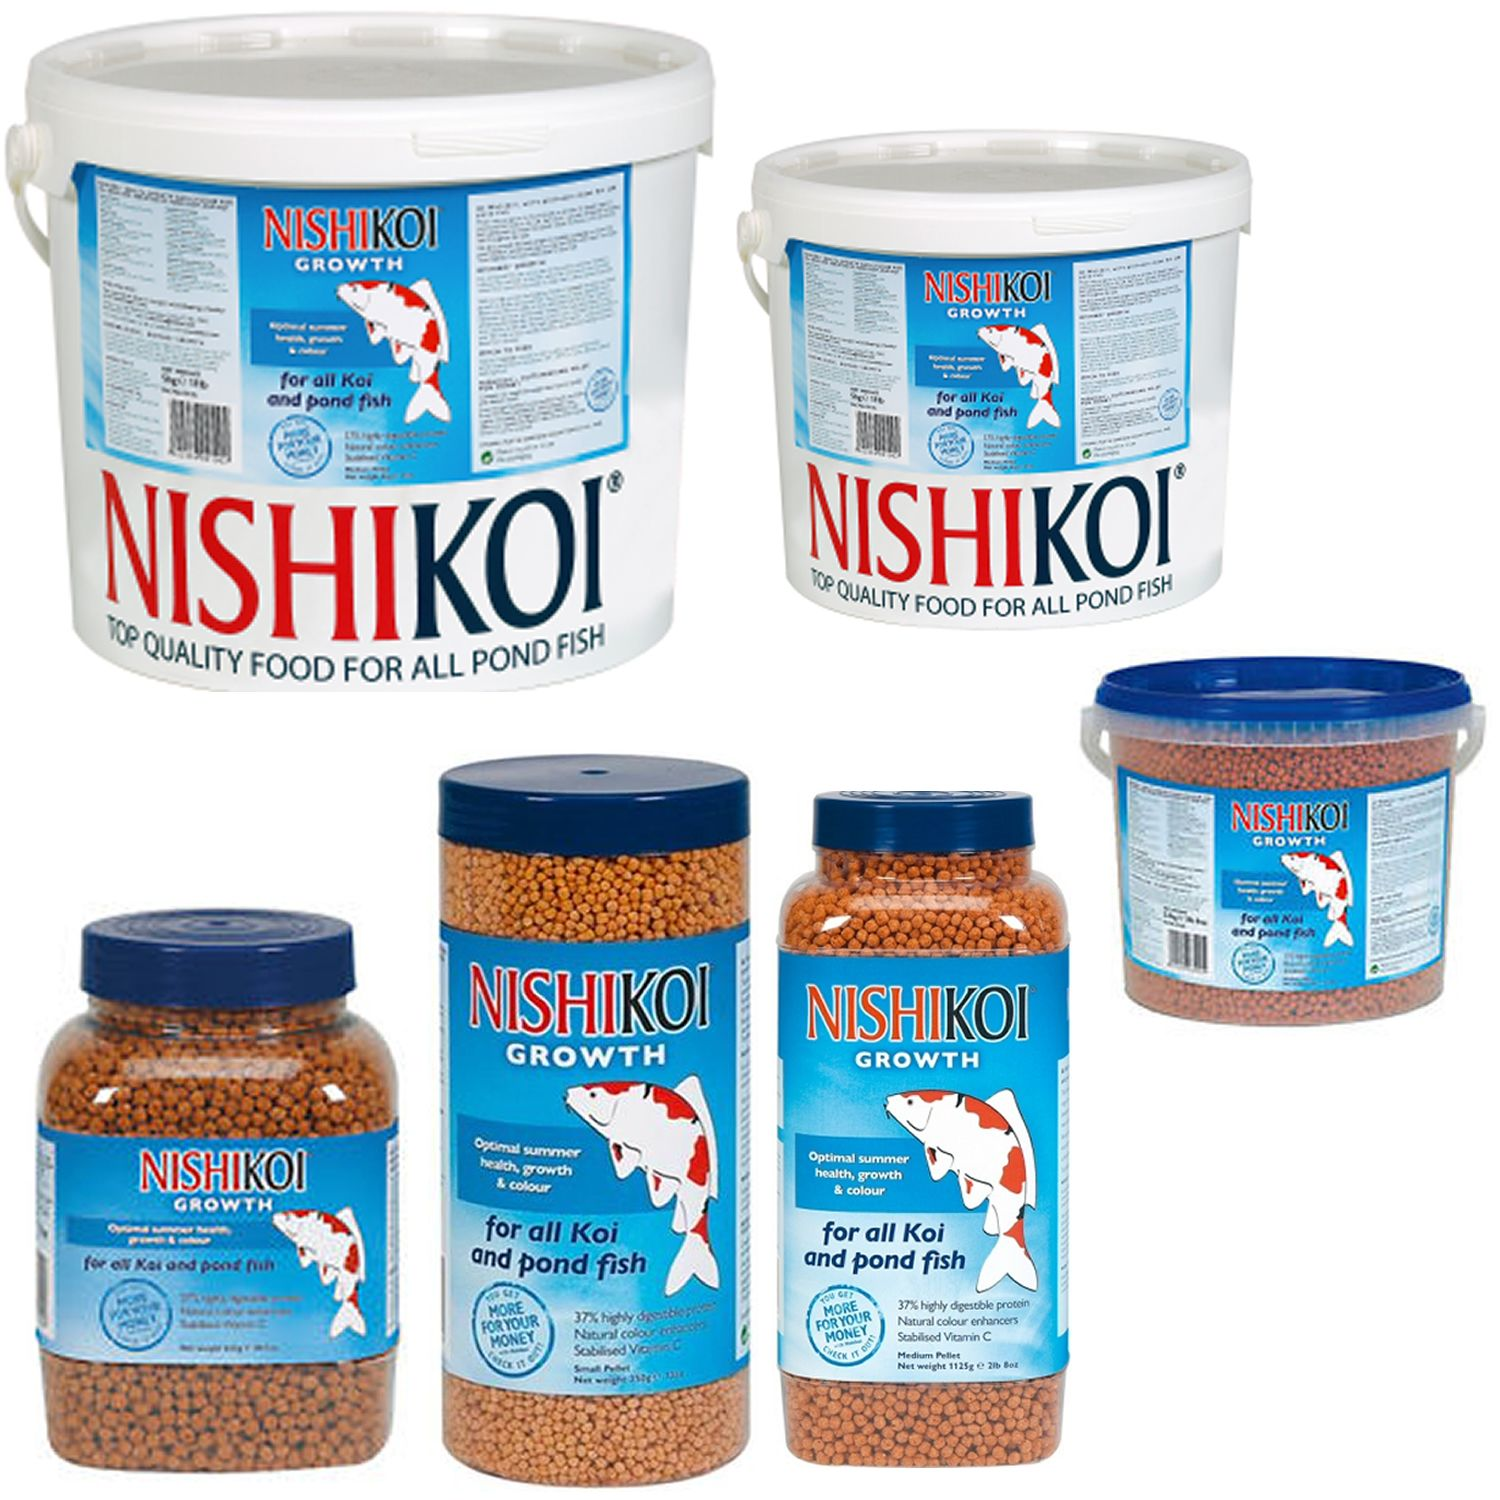 Nishikoi growth pond fish food 350g small pellet 2mm ebay for Pond fish food